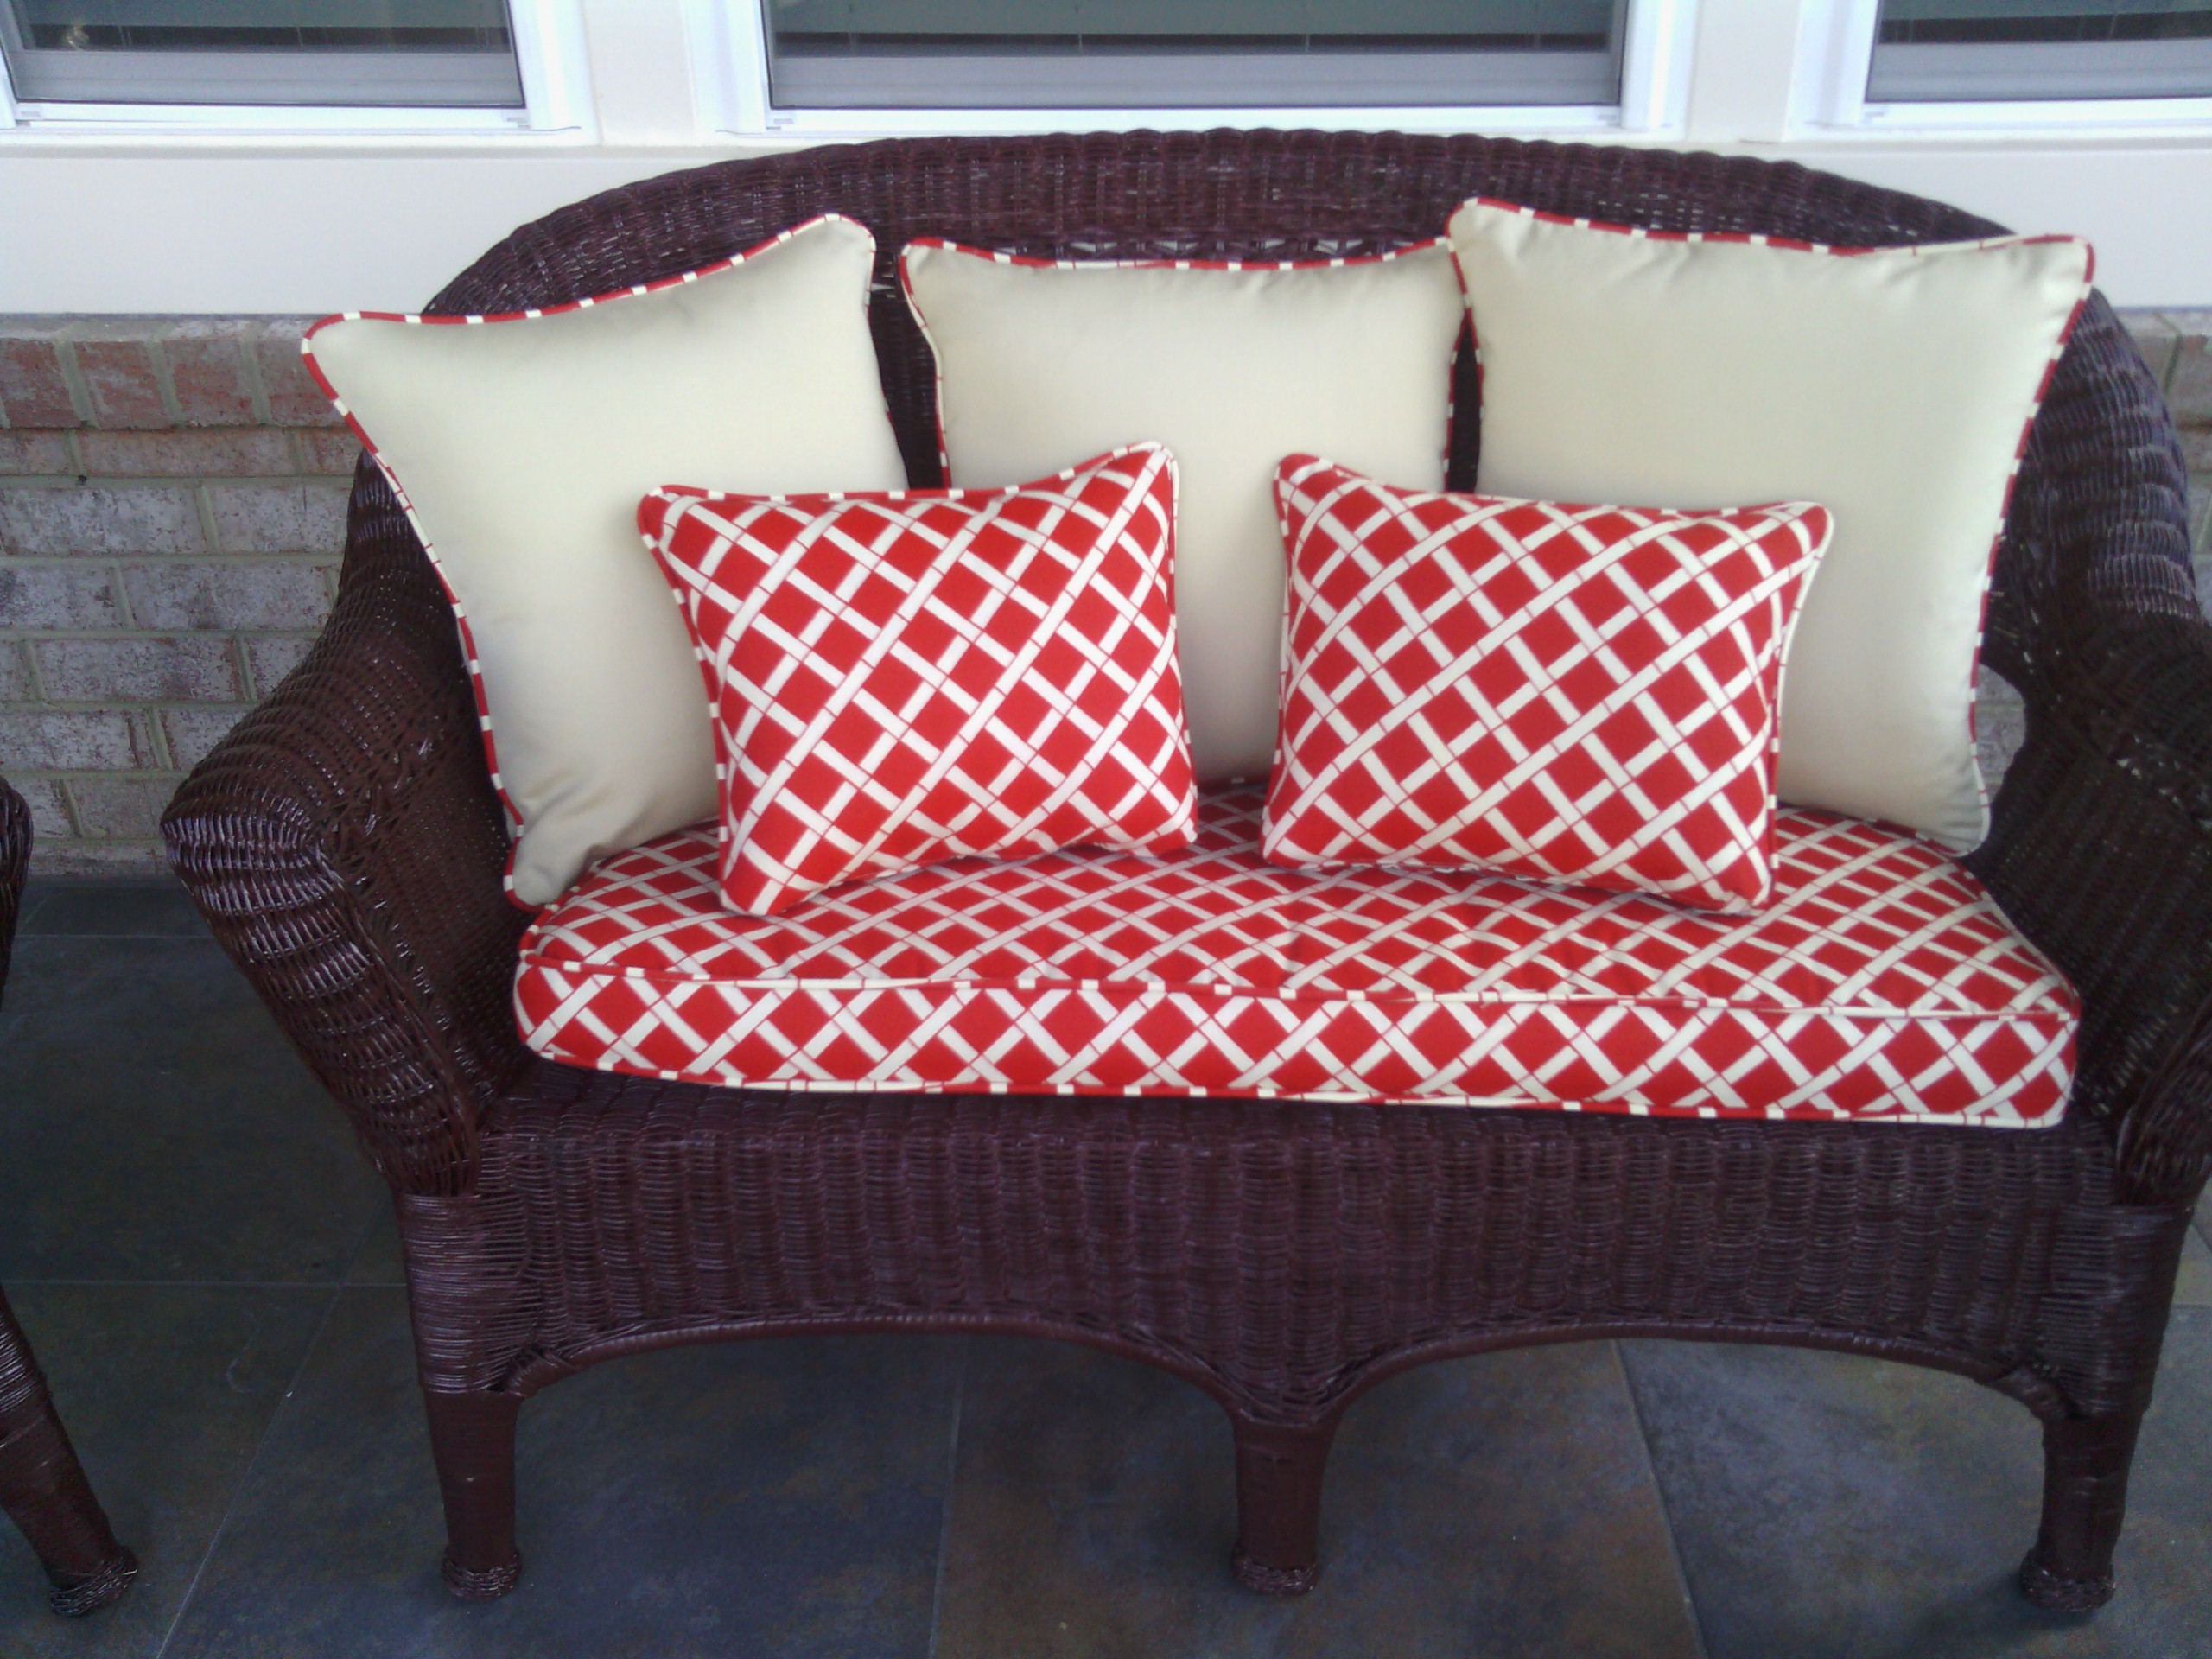 reupholster-furniture.jpg